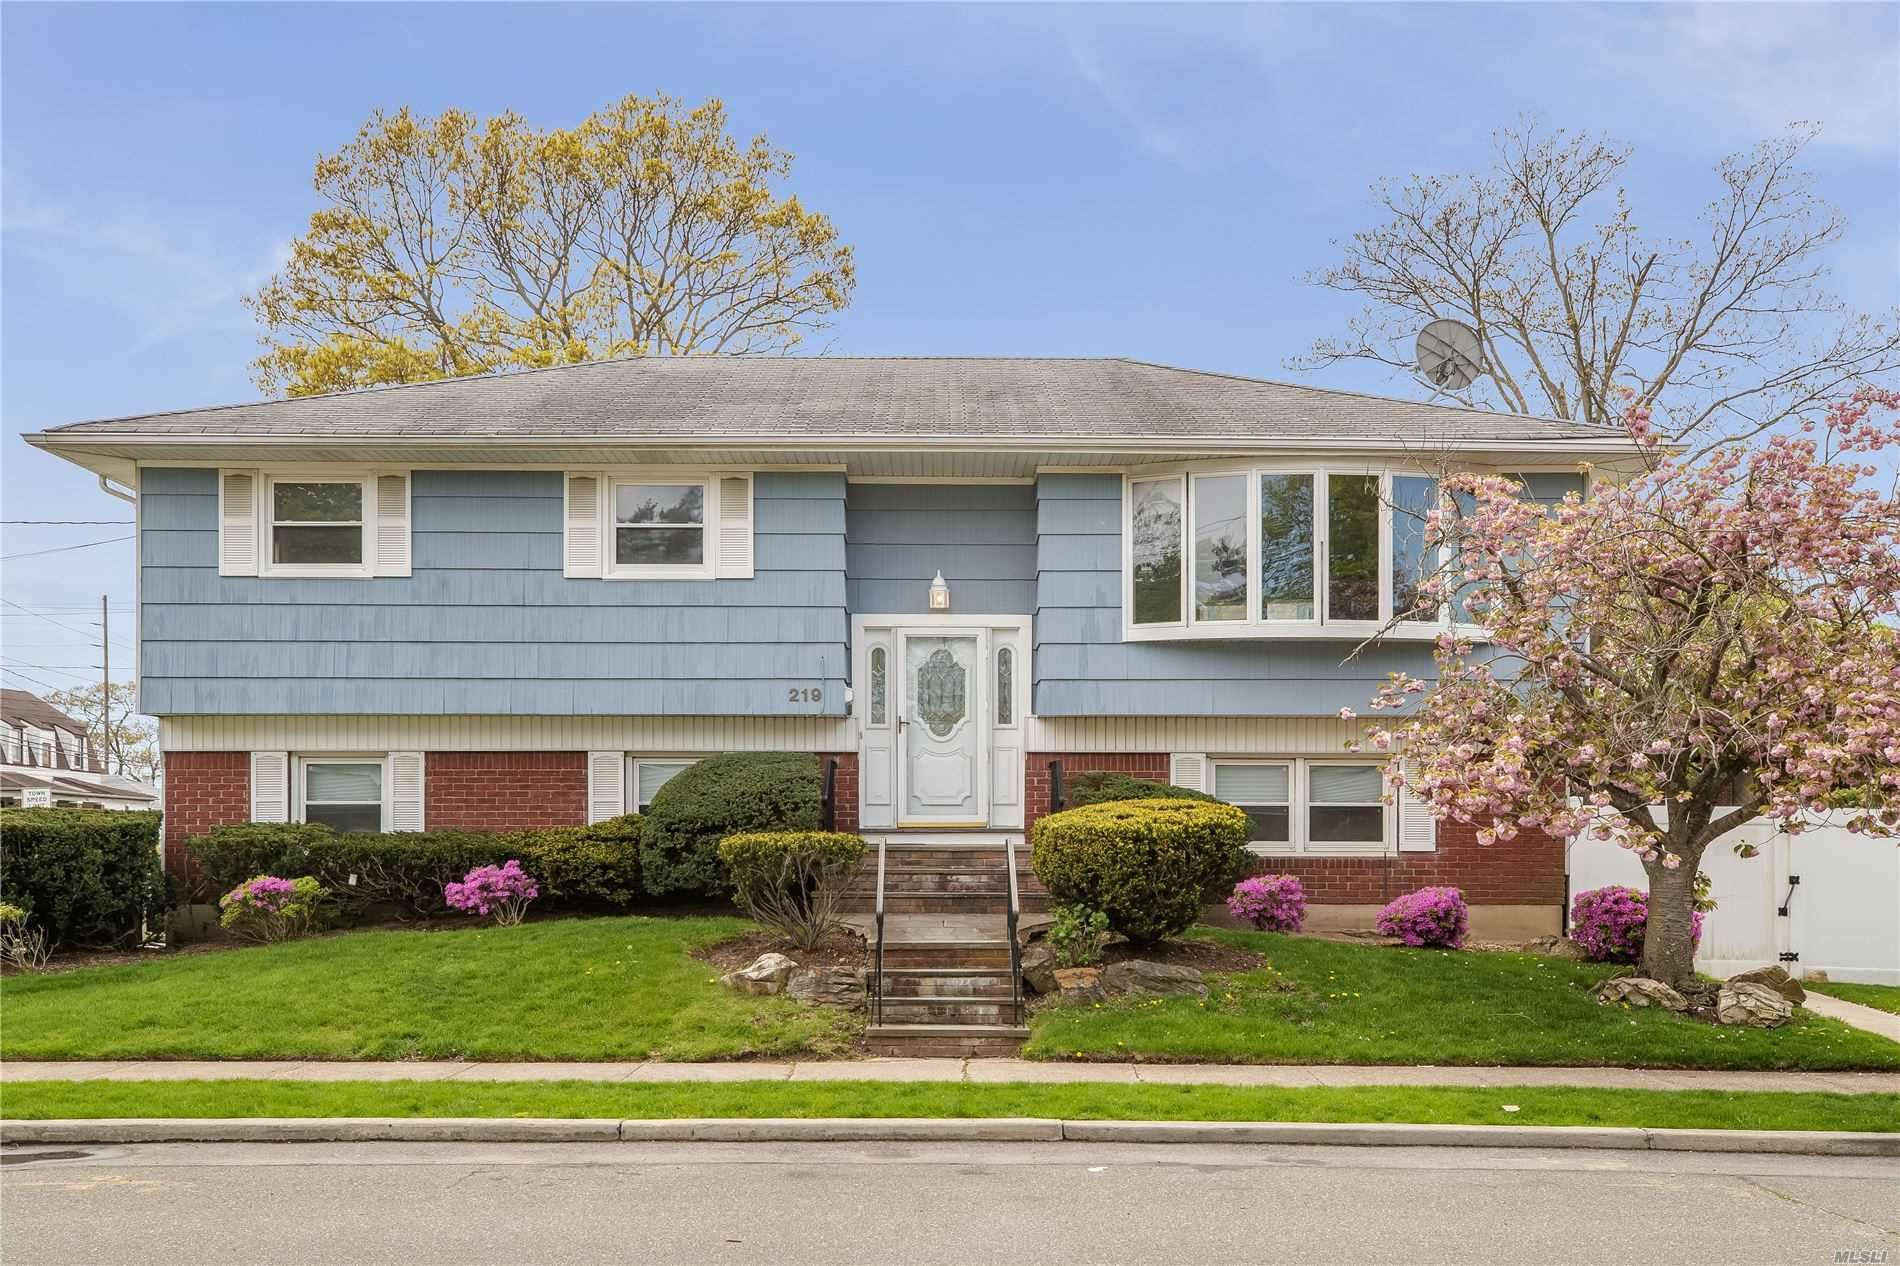 219 Pearsall Pl, Woodmere, NY 11598 - MLS#: 3213911